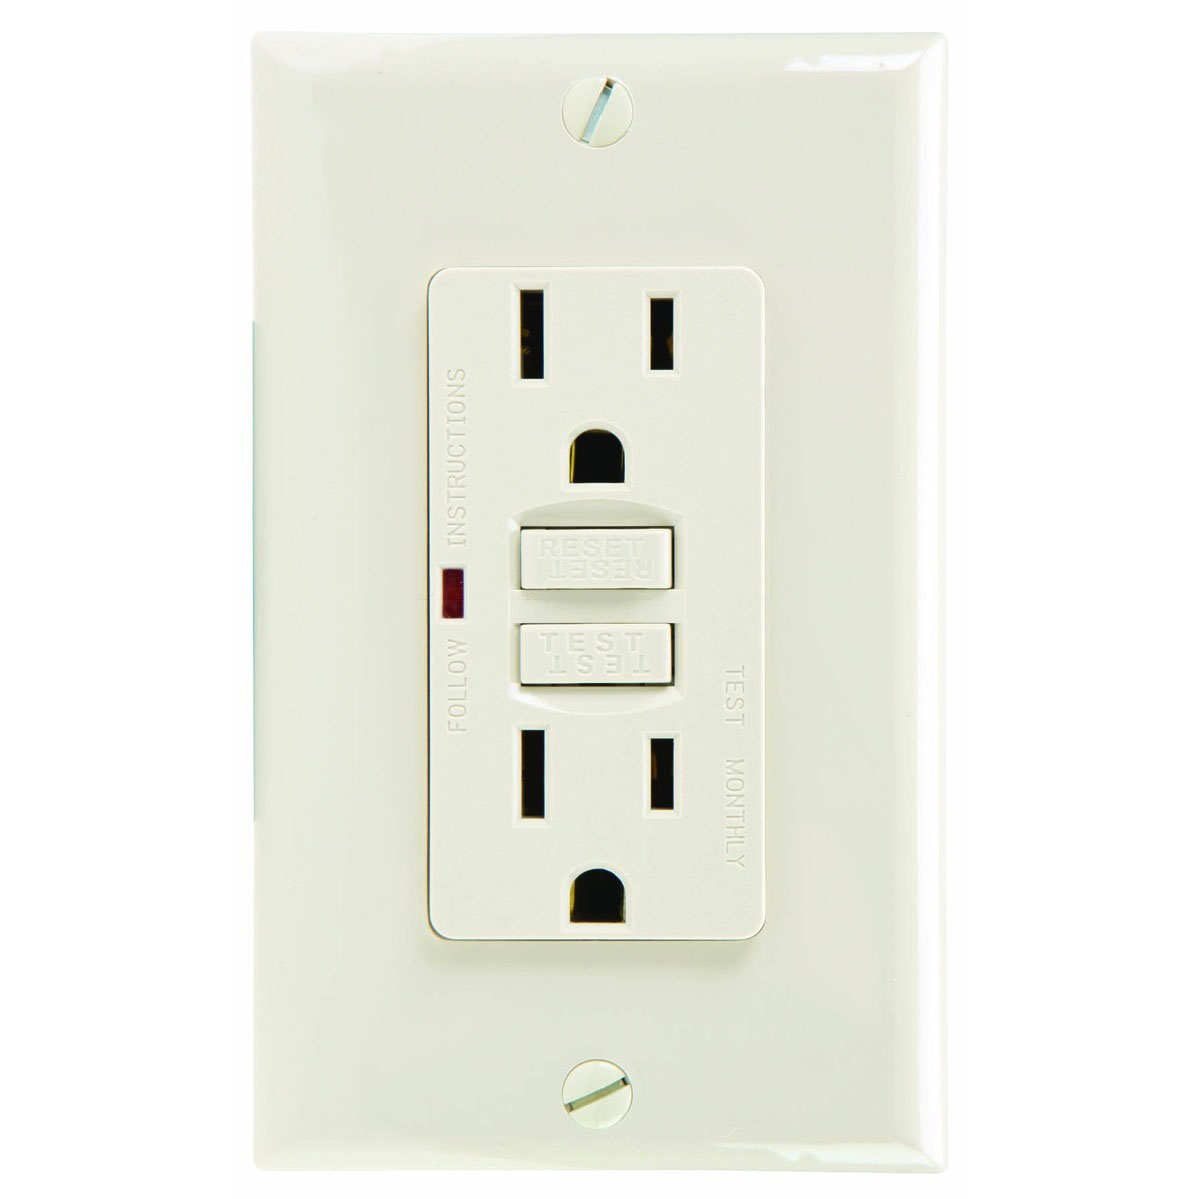 Dining room outlets